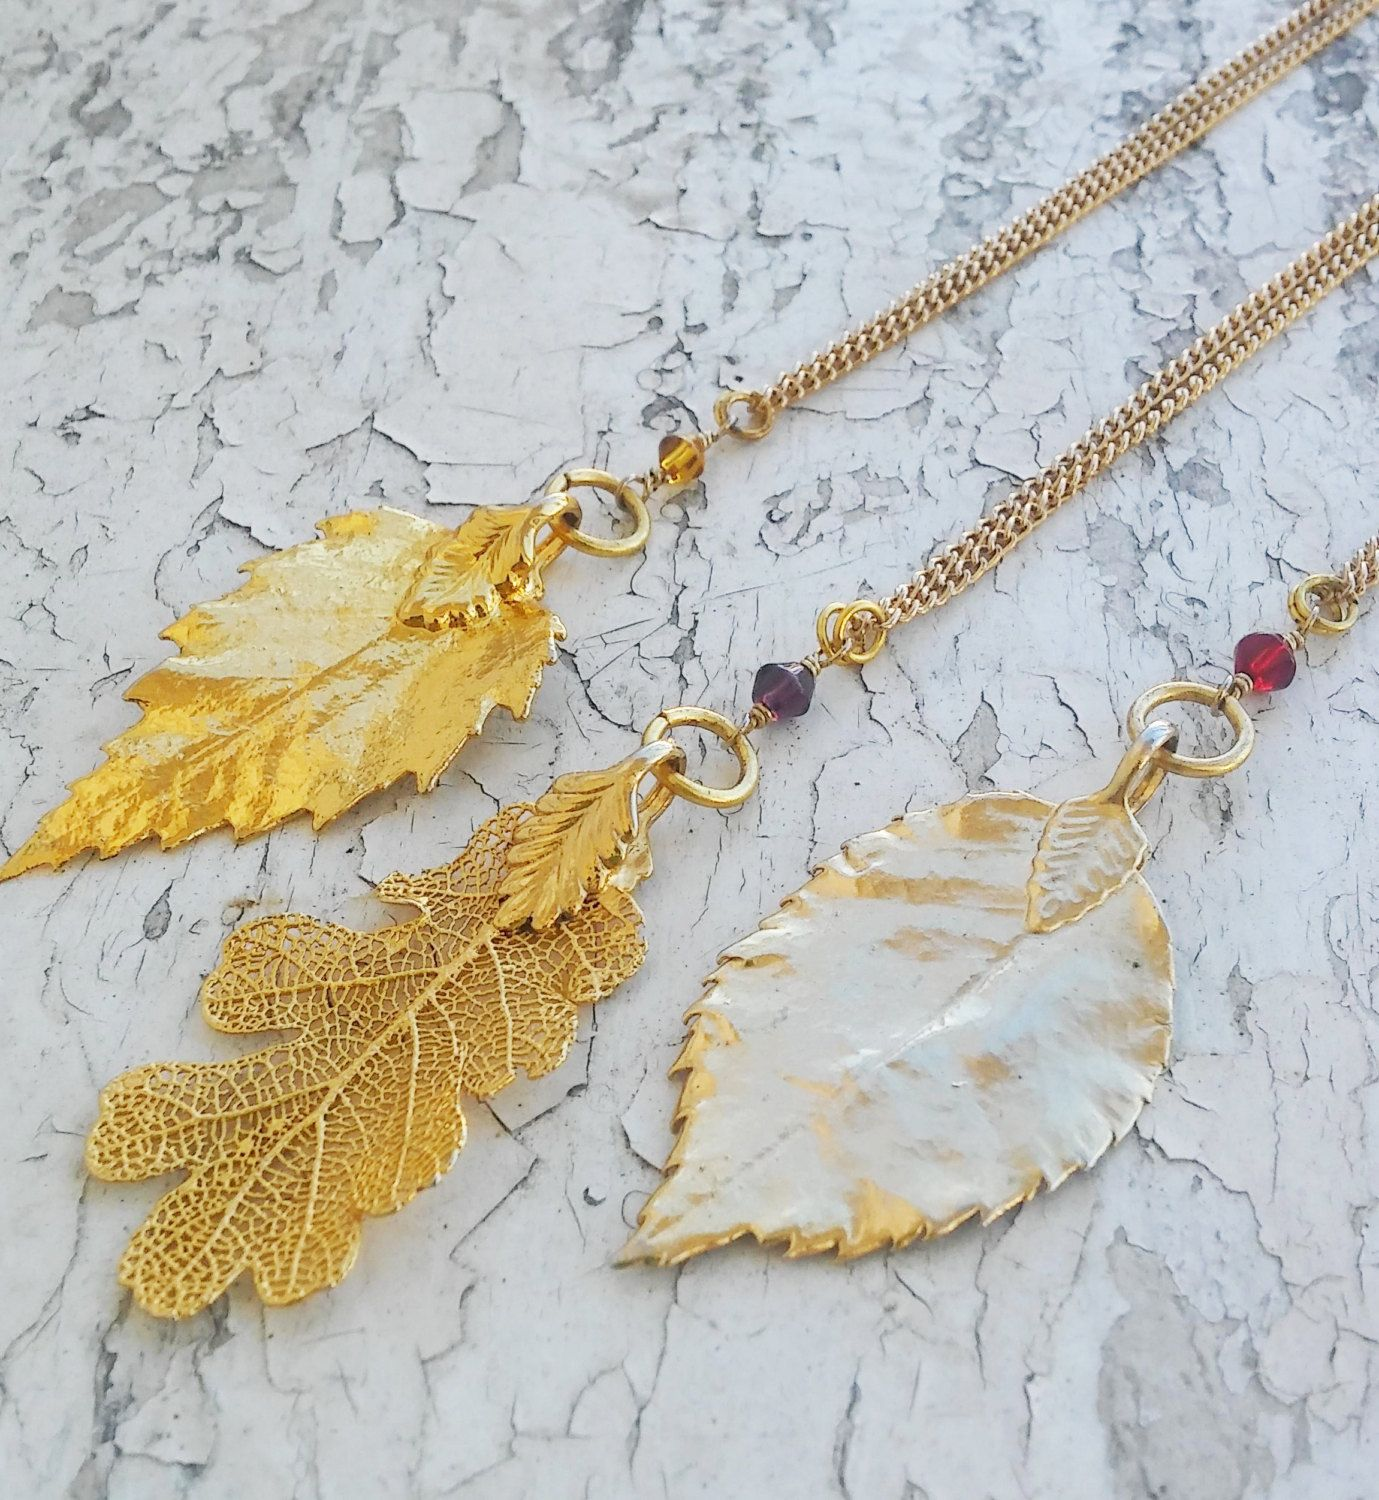 Golden leaves. Fall Leaves. Real Leaf. Simple and Sweet Necklace by ObscuredOdditiess on Etsy